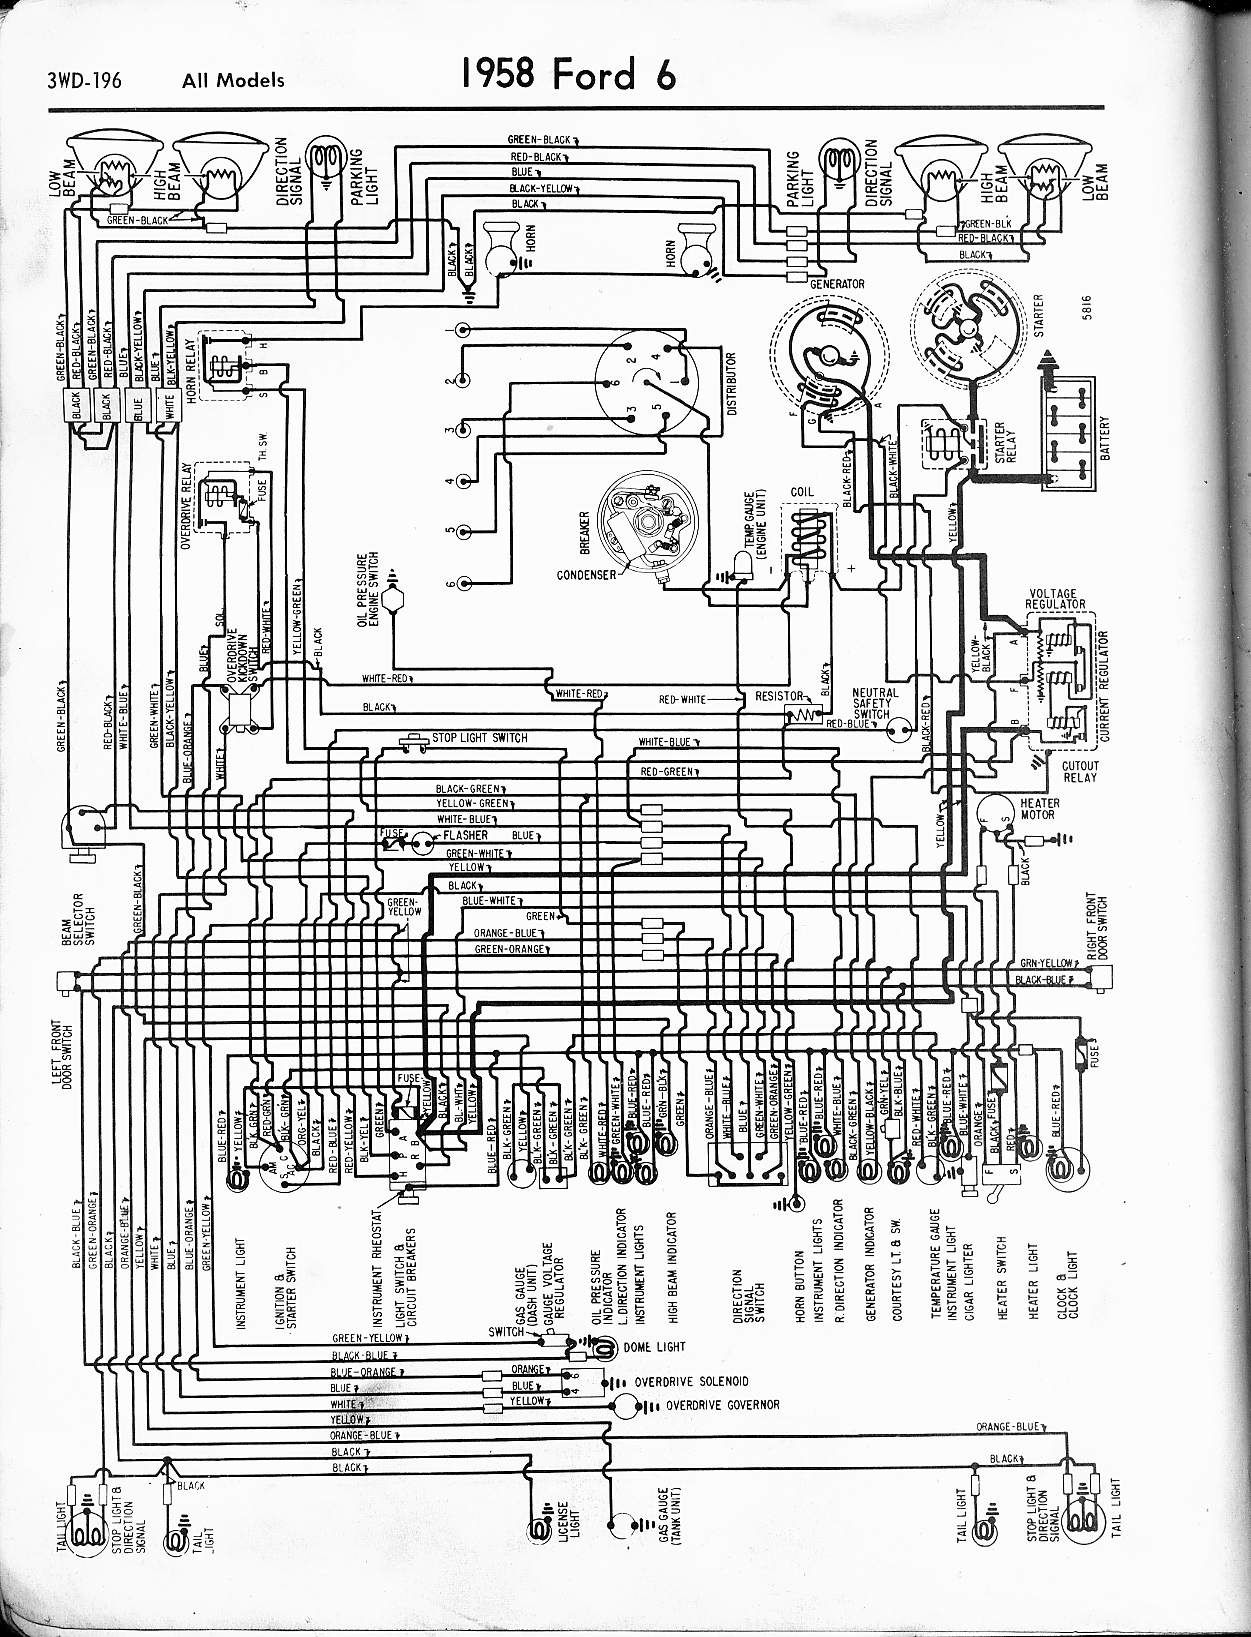 1958 Ford 6 Wiring Schematic Diagram Design Diagram Trailer Wiring Diagram